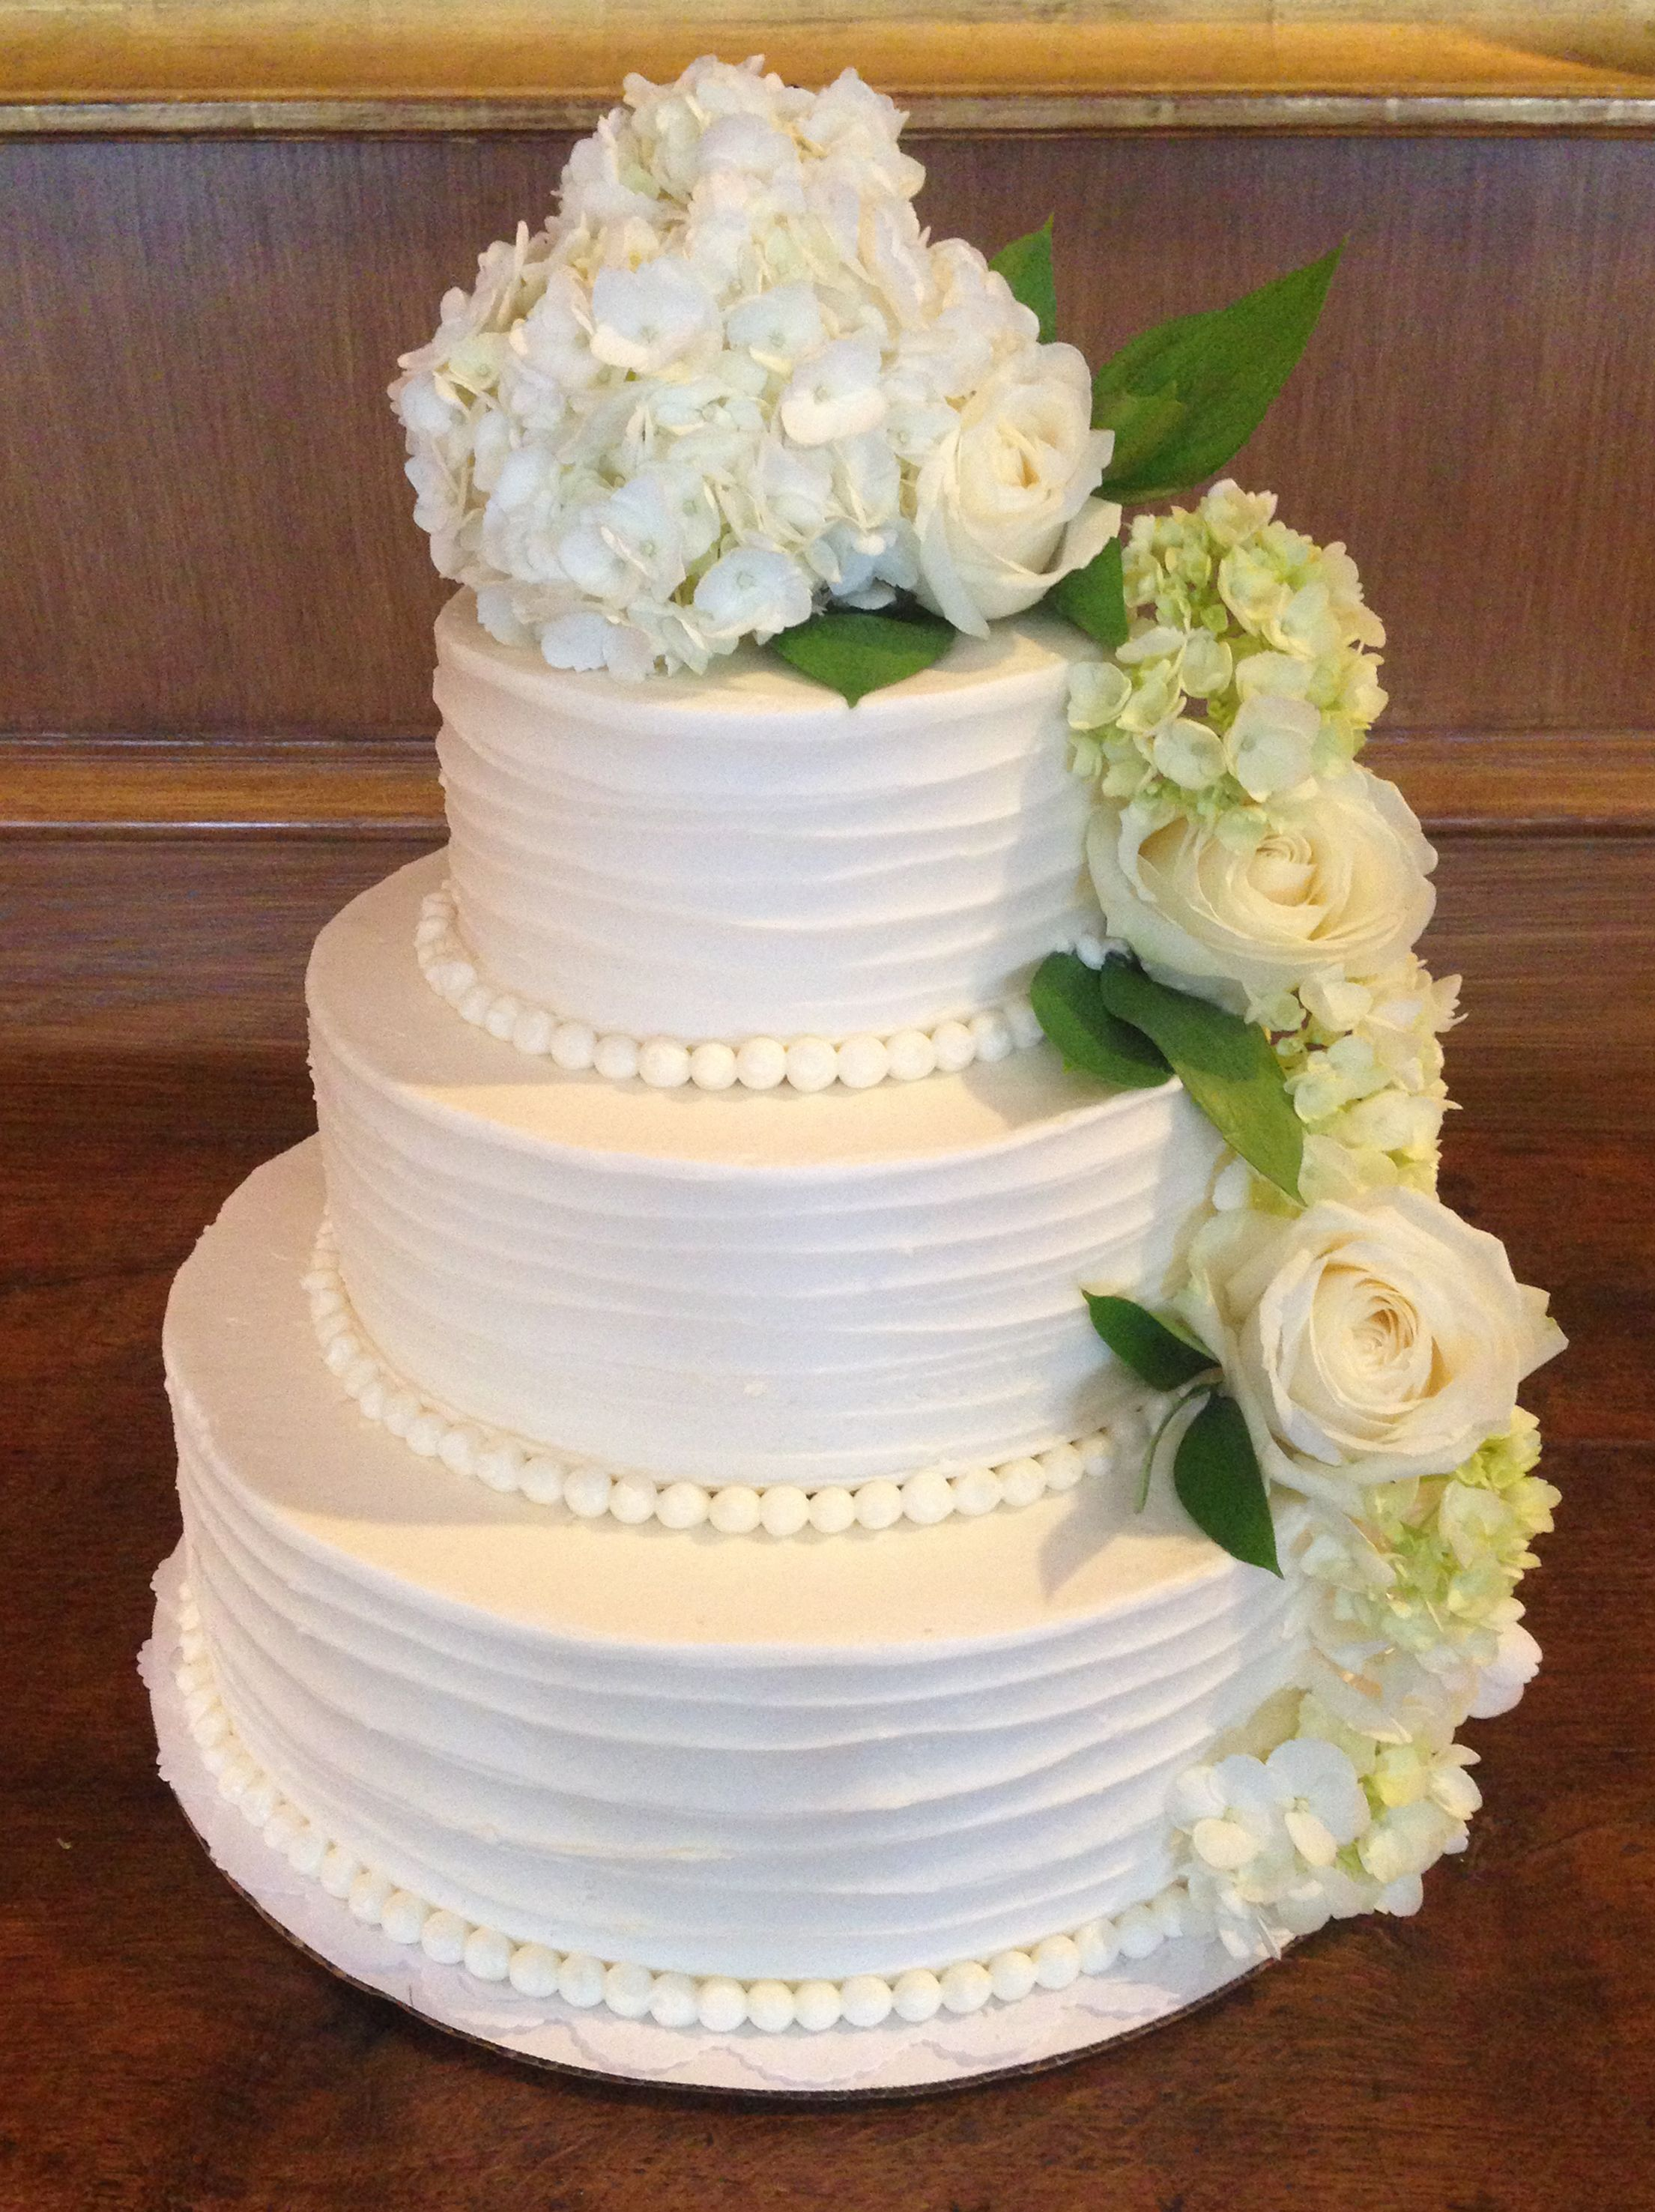 Simple Elegant Wedding Decor Similiar Simple Elegant Wedding Cakes Keywords